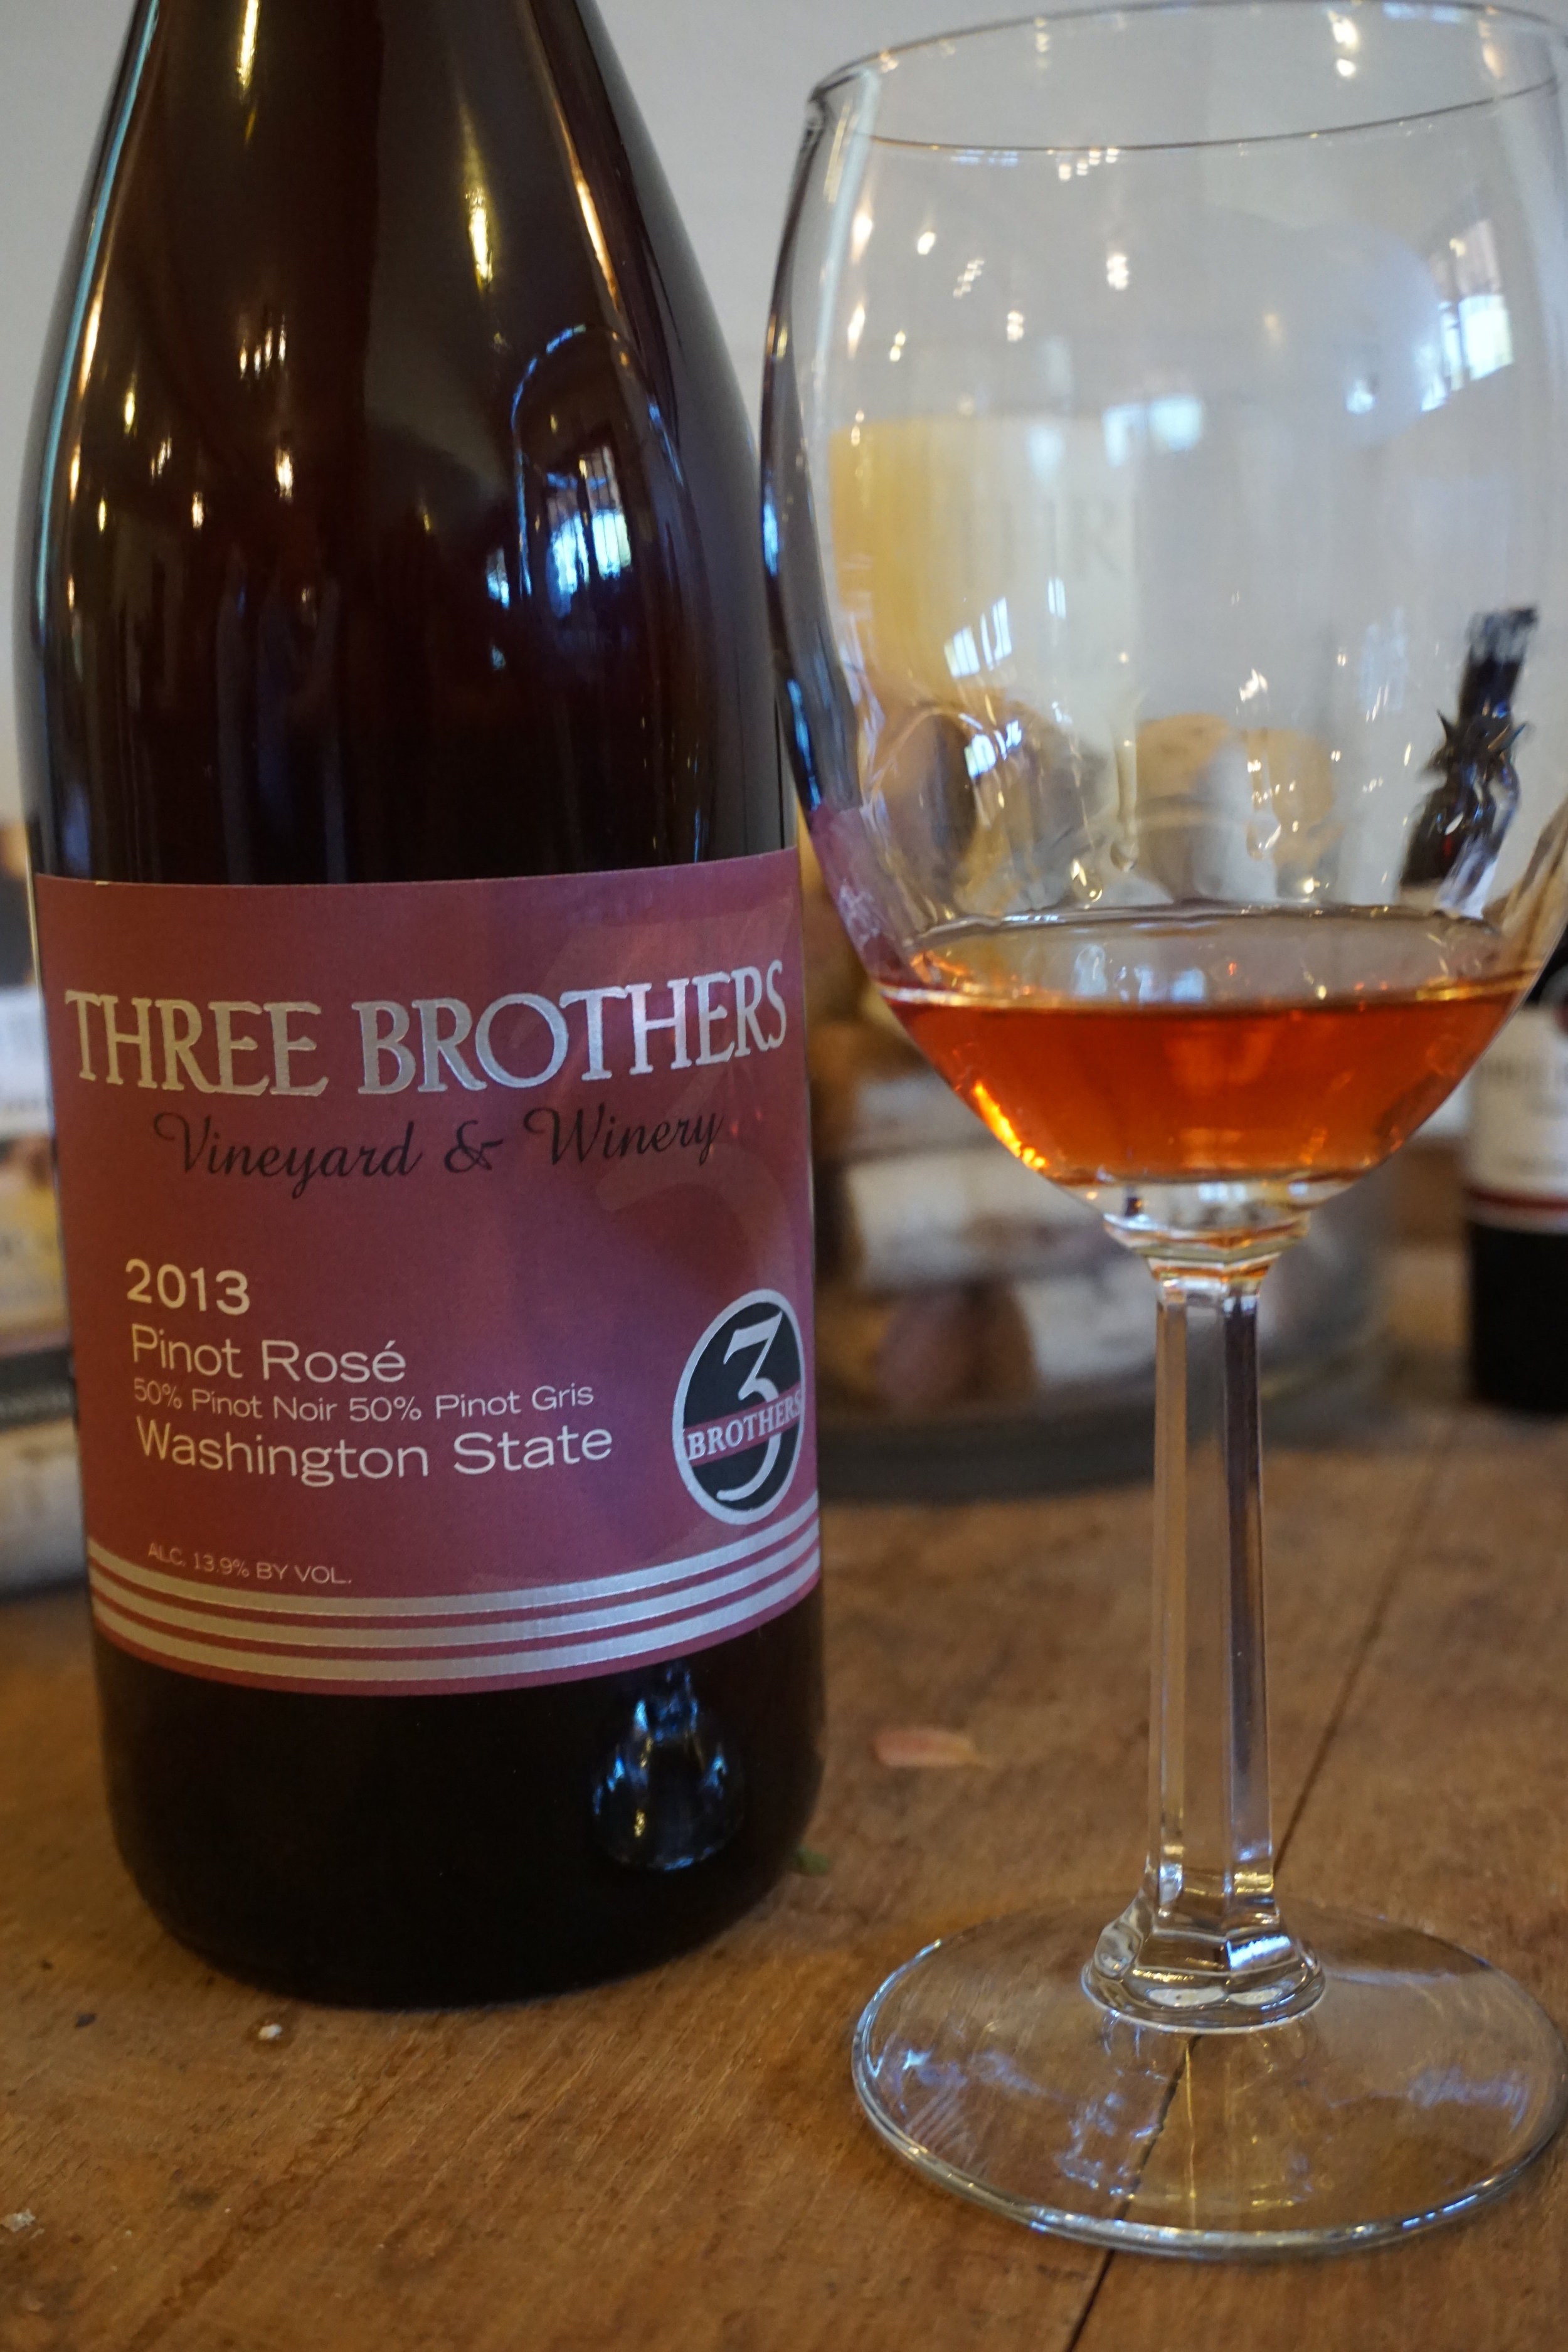 The salmon pink color of Three Brothers 2013 Pinot Rosé gives way to a true pinot noir nose of ripe raspberry and cherry with enough white pepper finish to keep this sweeter rosé from being cloying.